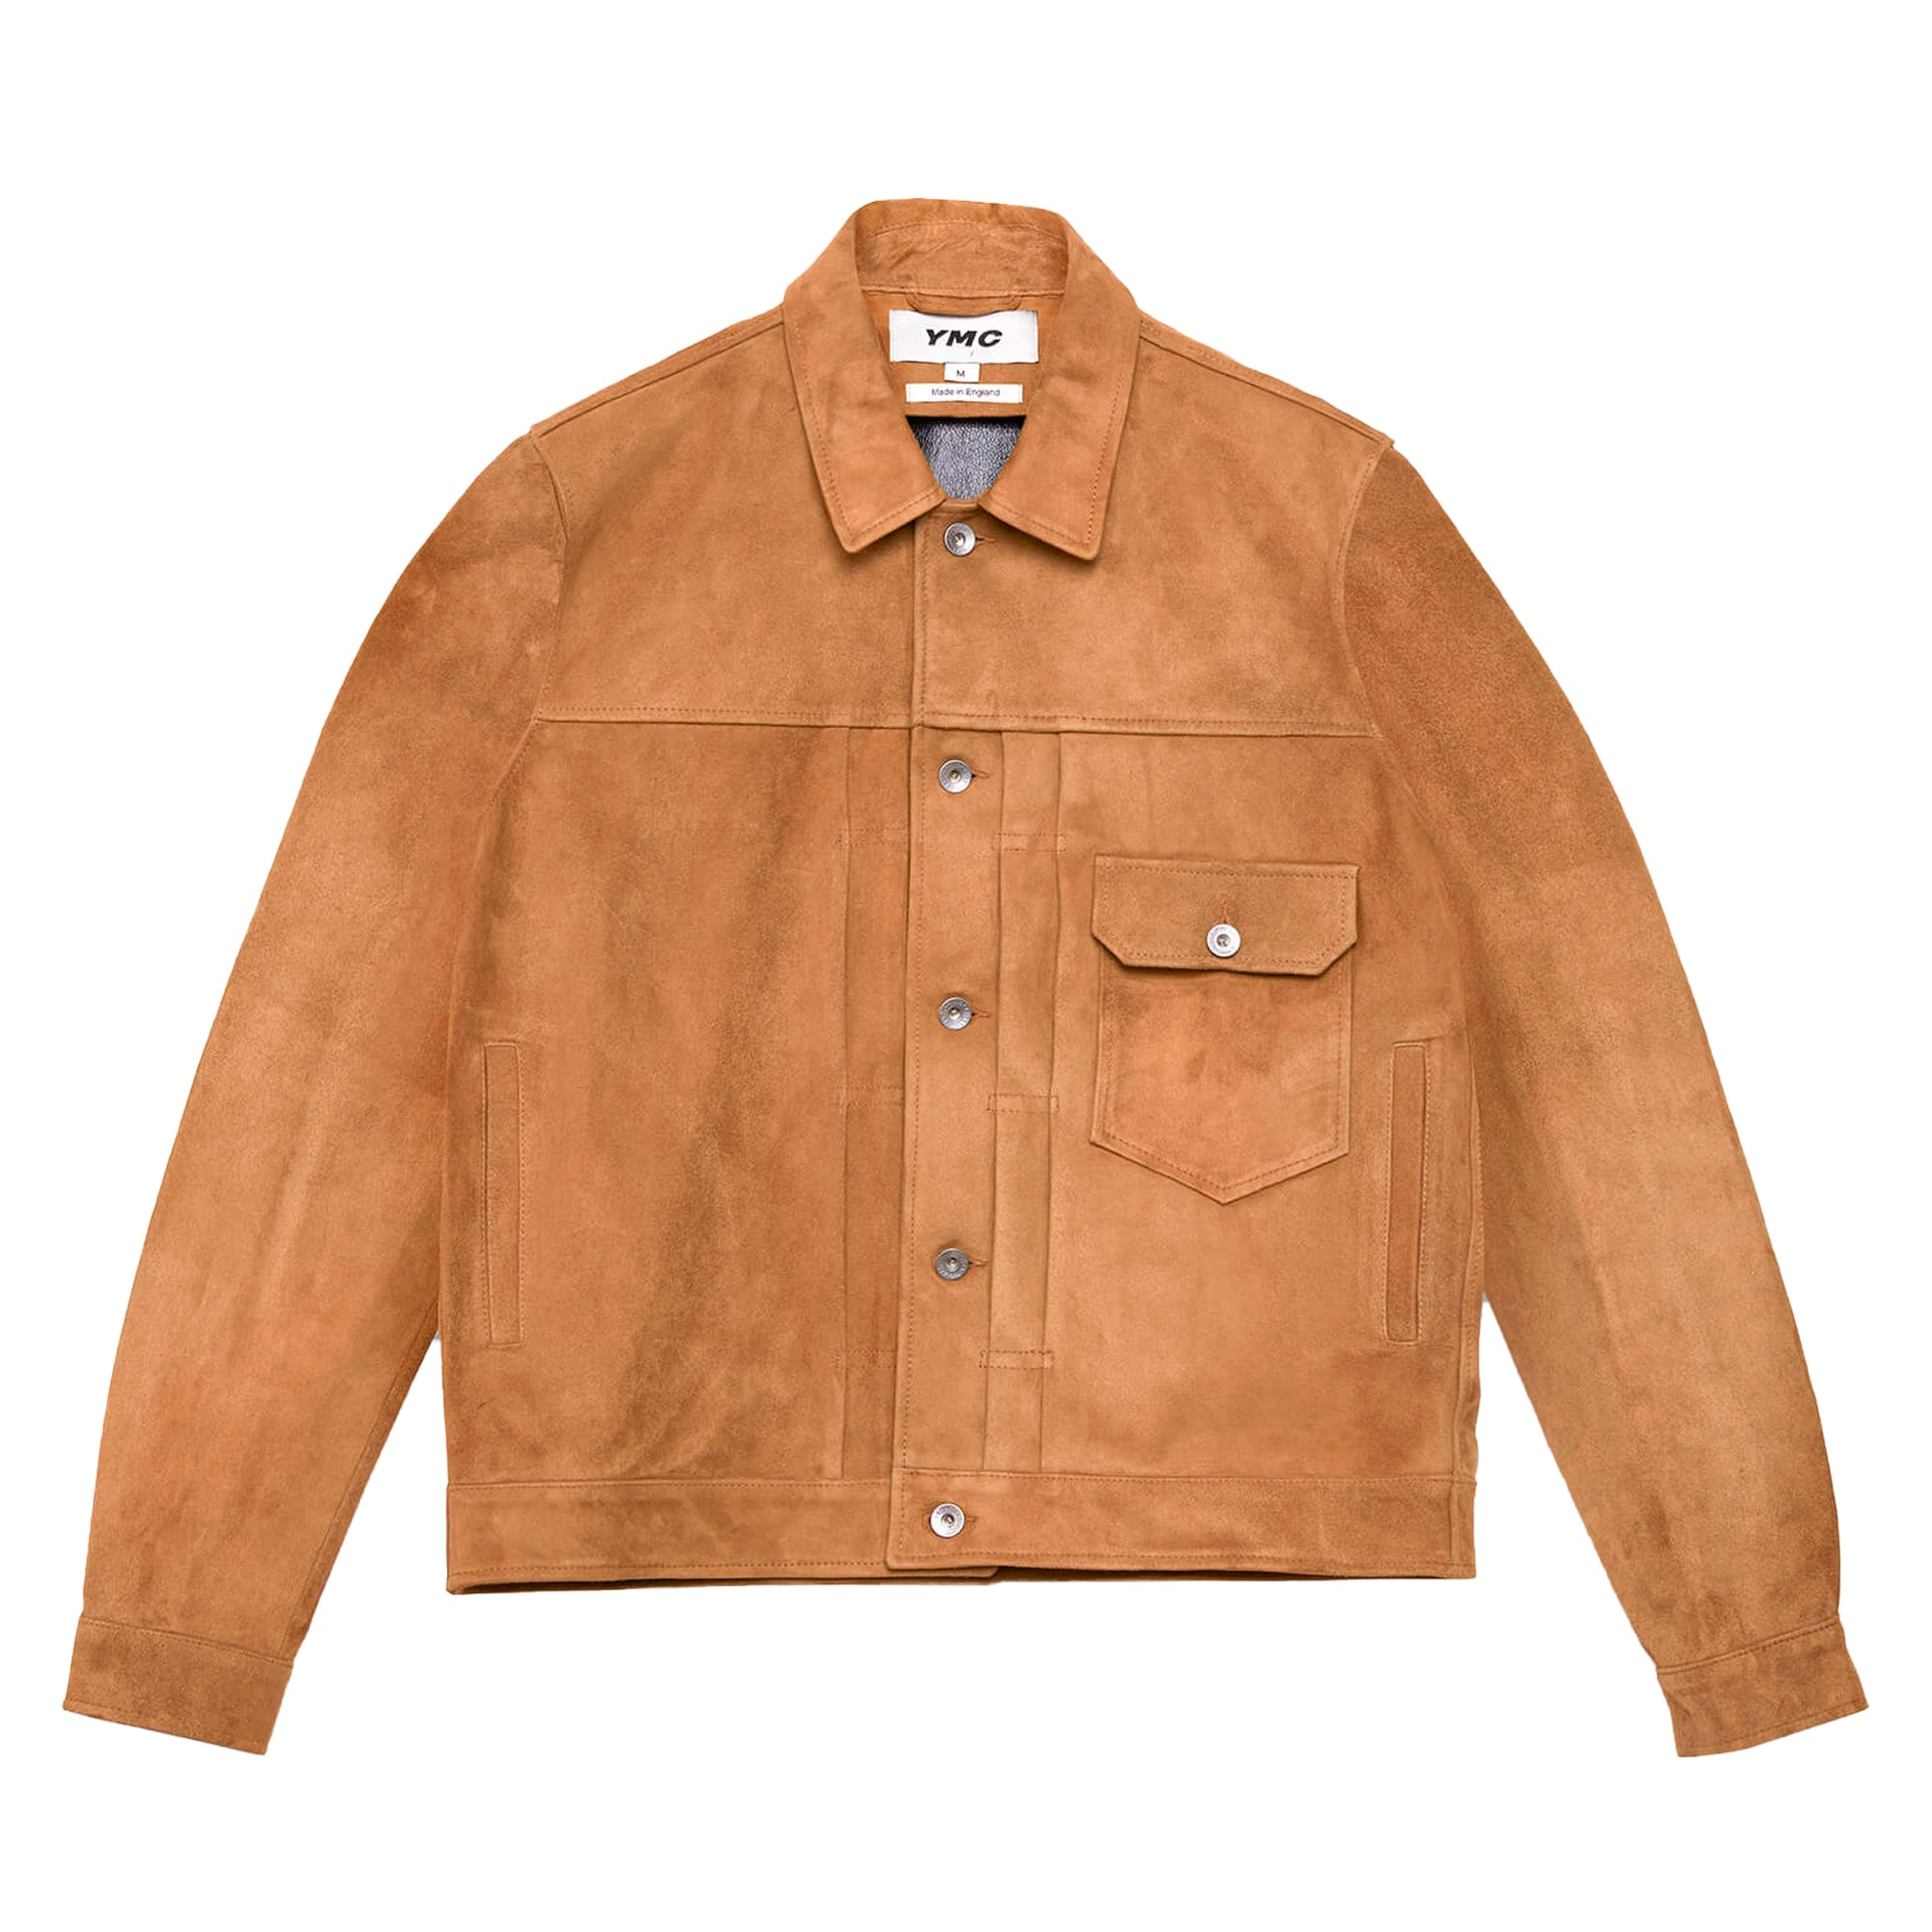 YMC MK1 Jacket: Tan - The Union Project